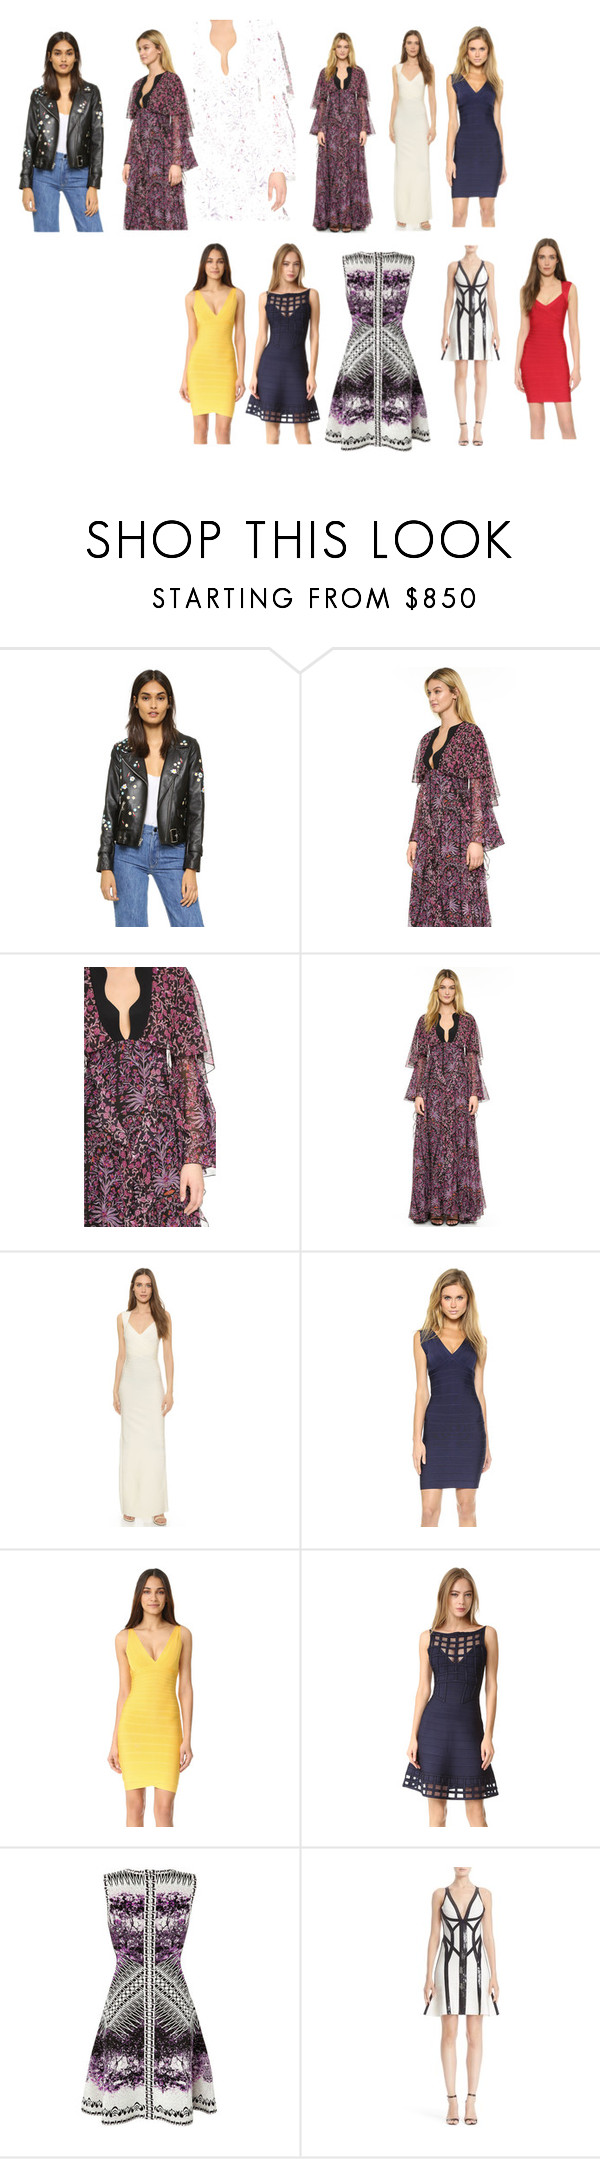 """""""fashion for sale"""" by denisee-denisee ❤ liked on Polyvore featuring Sandy Liang, Giambattista Valli, Hervé Léger and vintage"""